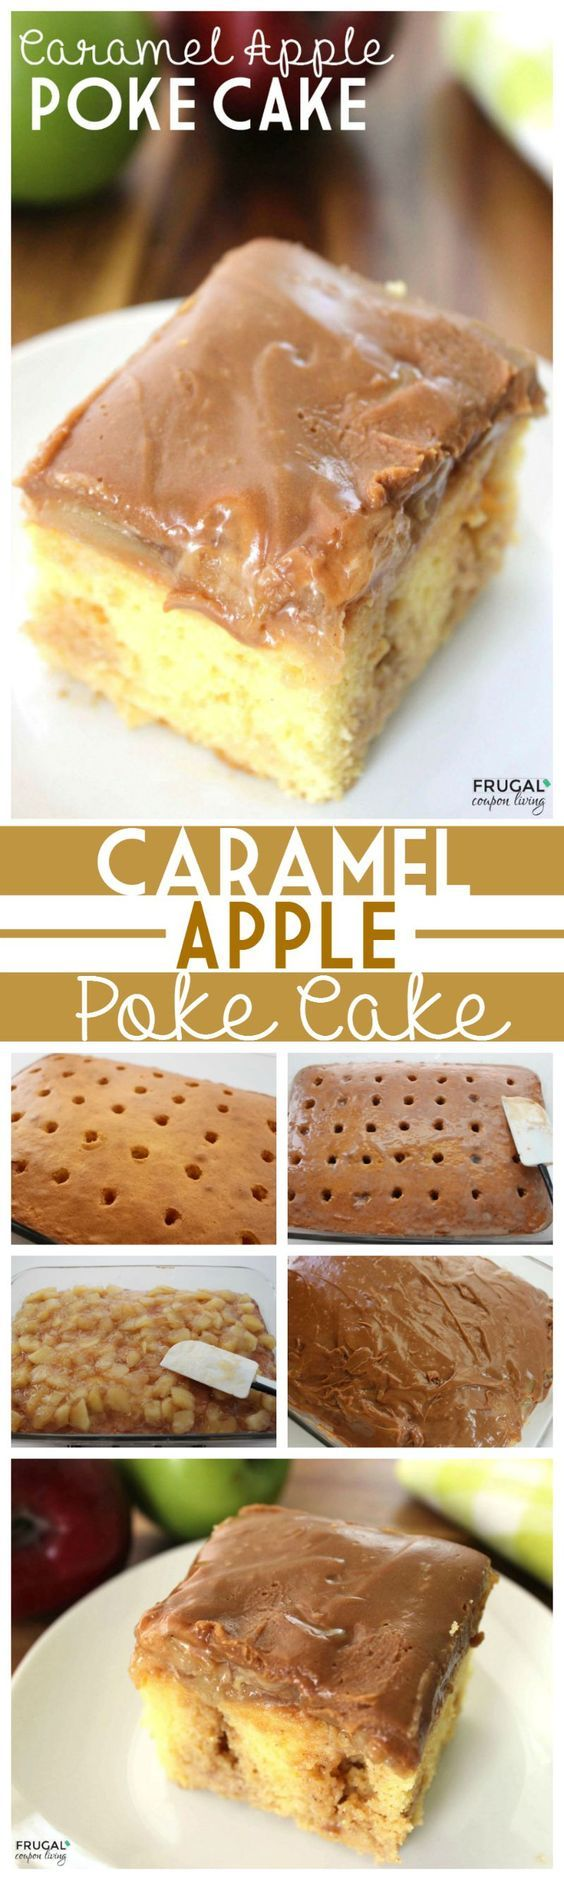 Caramel Apple Poke Cake made with cake mix and apple filling. Easy to make. Recipe details on Frugal Coupon Living. More Fall Cake Ideas and Caramel Apple Recipes. Pin to Pinterest.